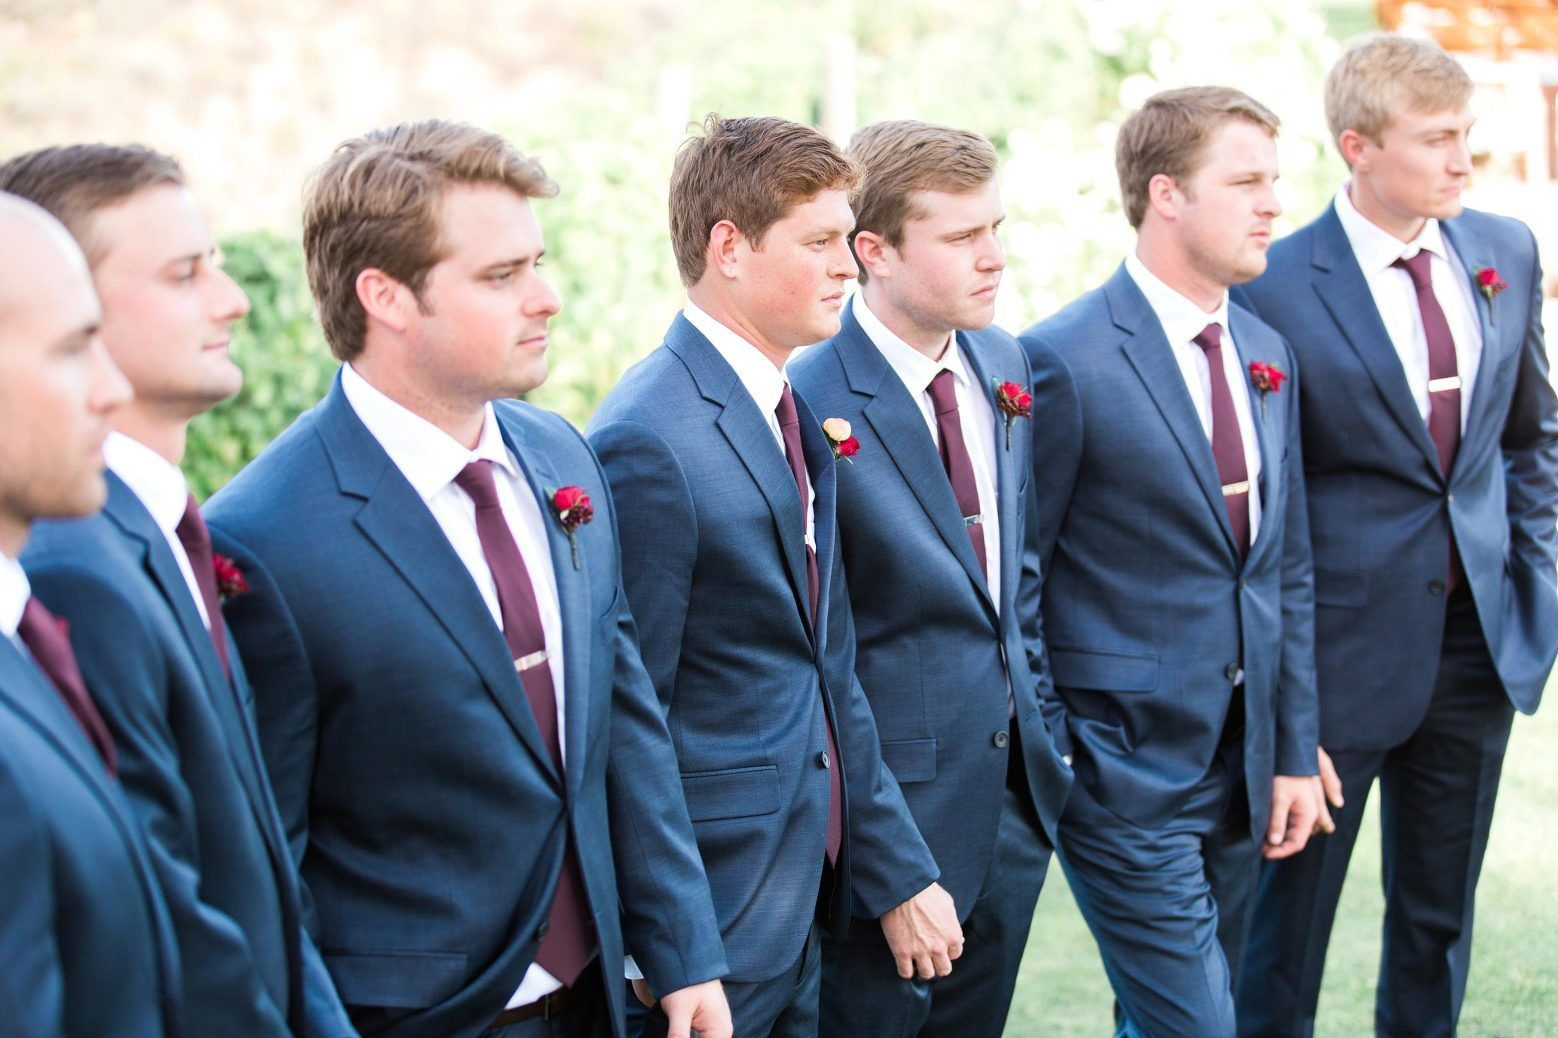 Classic groomsmen look. Navy suits, maroon ties, tie clips. Red and ...